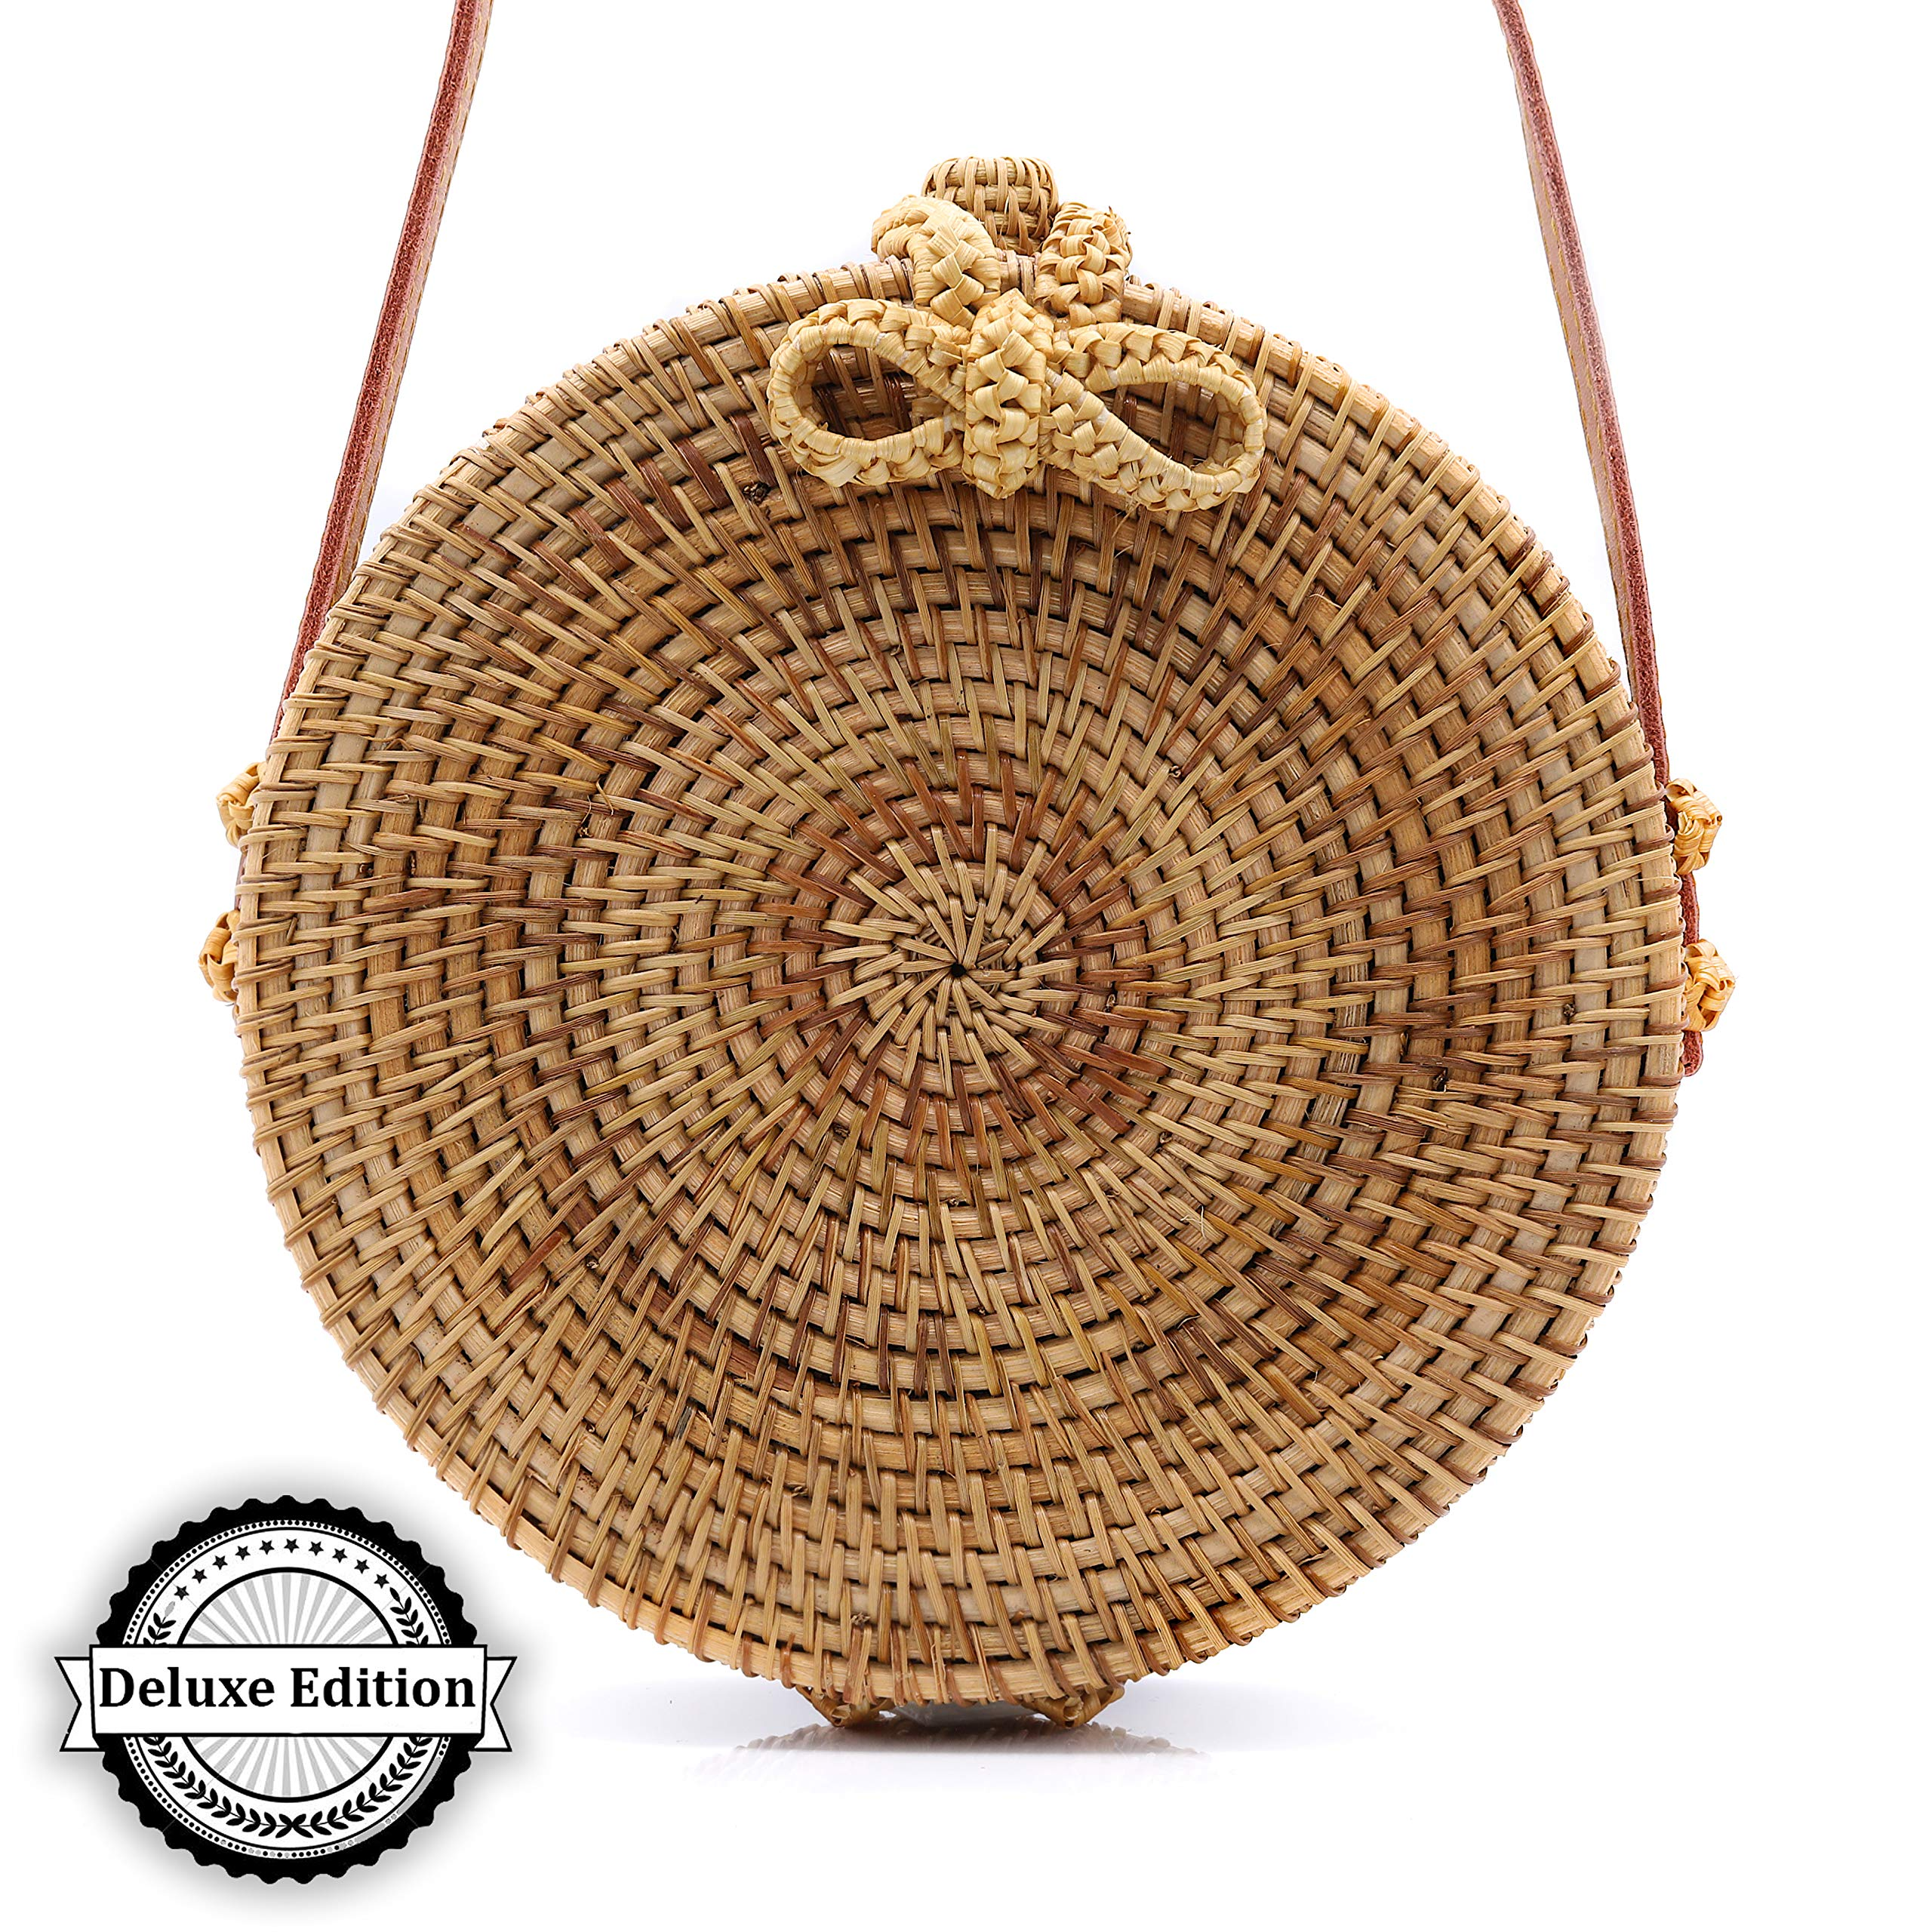 RATTAN NATURALS Handwoven Round Rattan Crossbody Bag| DELUXE EDITION | Round Straw Bag for Women | Genuine 100% Leather Shoulder straps | Straw purse For Women | Boho bag | Straw Handbag for Women by Rattan Naturals (Image #2)